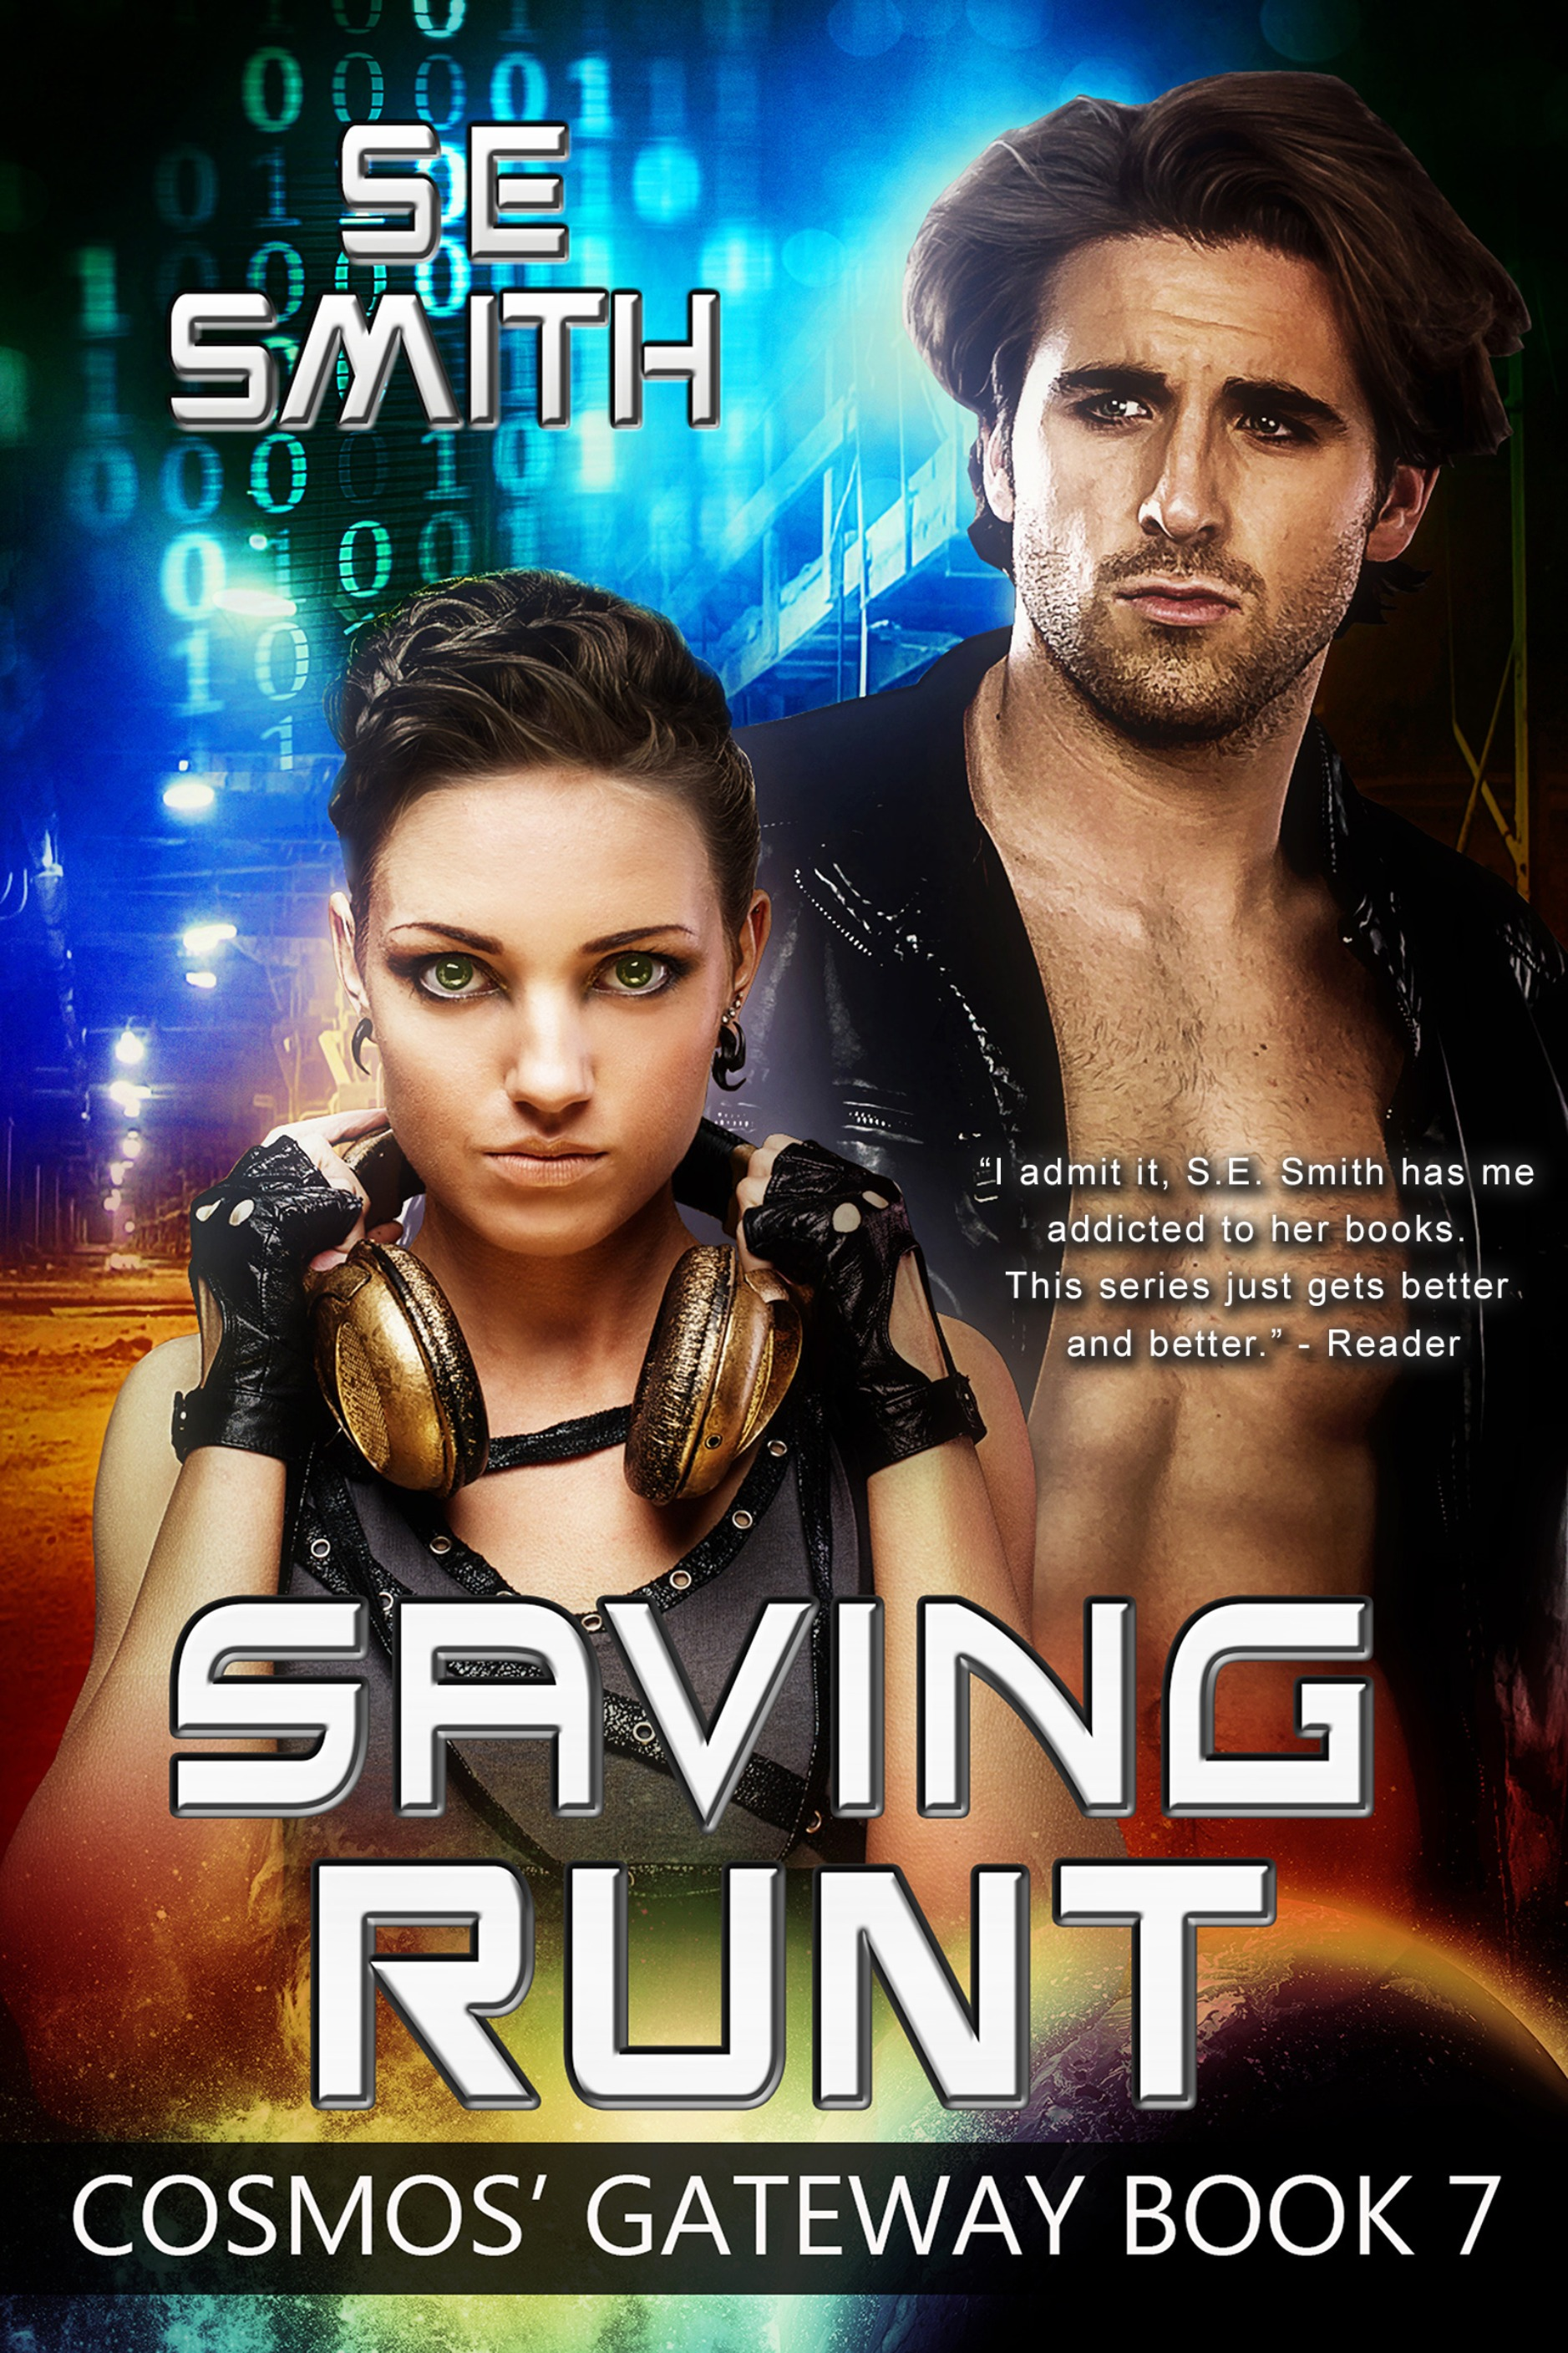 Saving Runt: Cosmos' Gateway Book 7 (ebook: Kindle and epub)